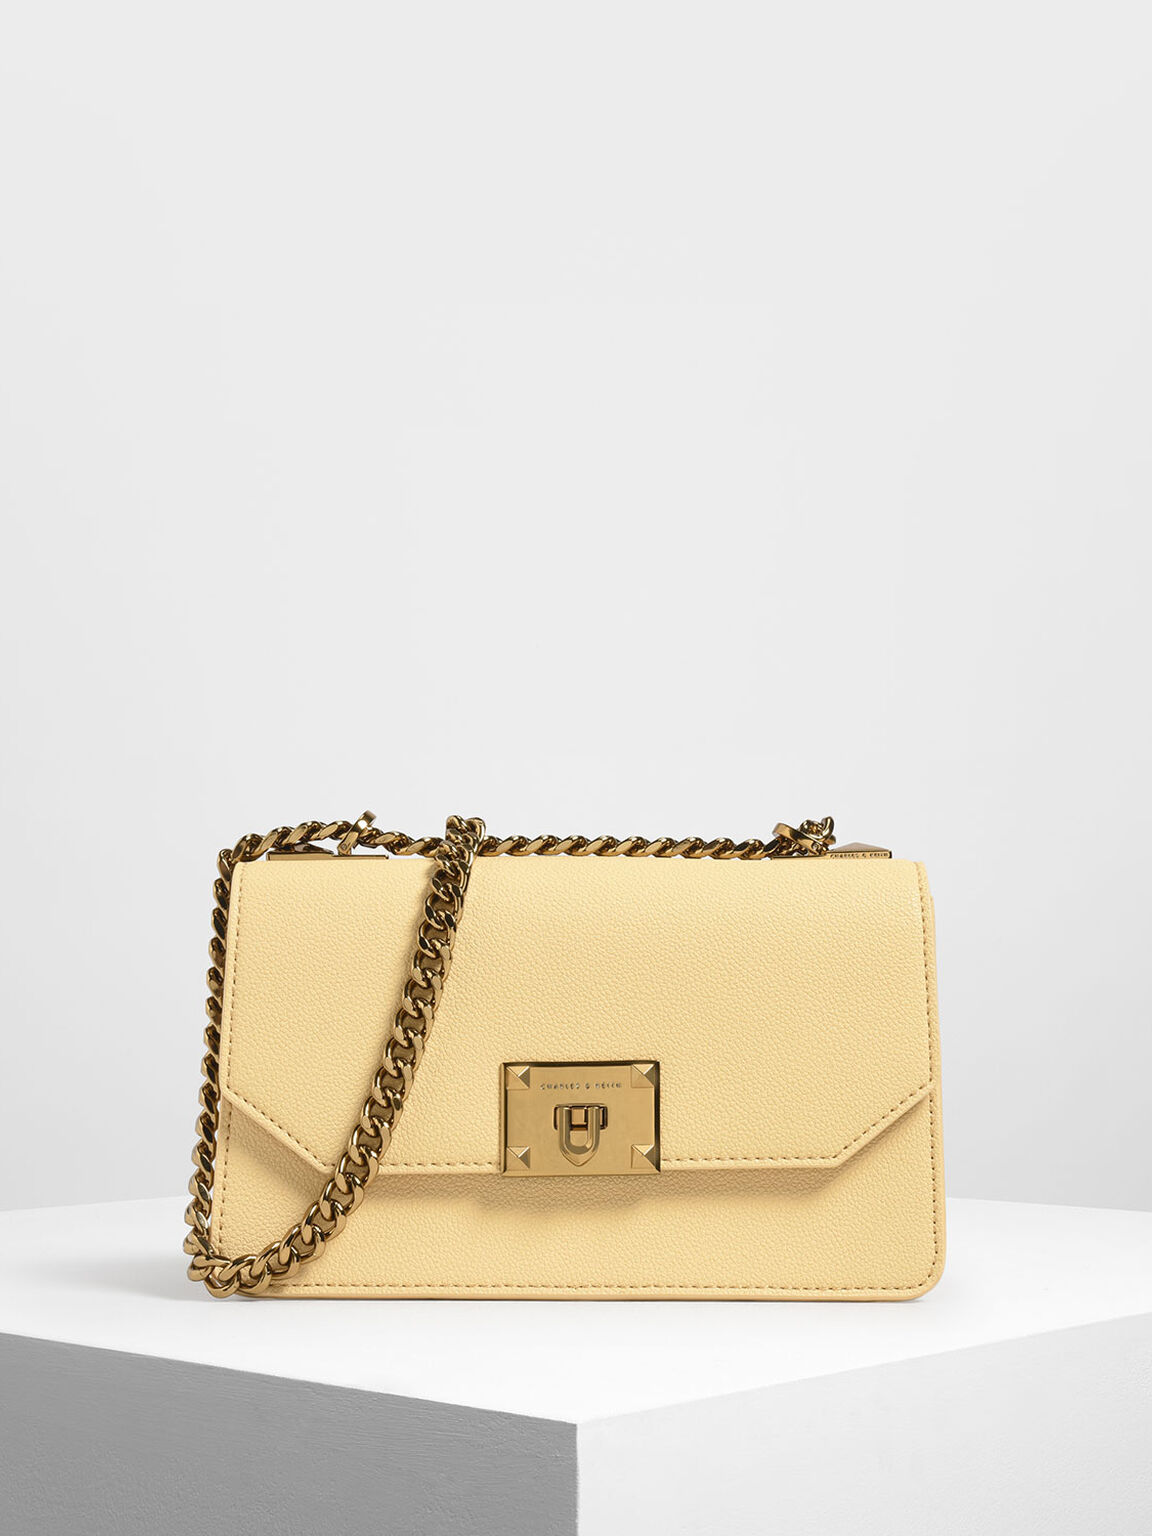 Metal Push Lock Crossbody Bag, Yellow, hi-res